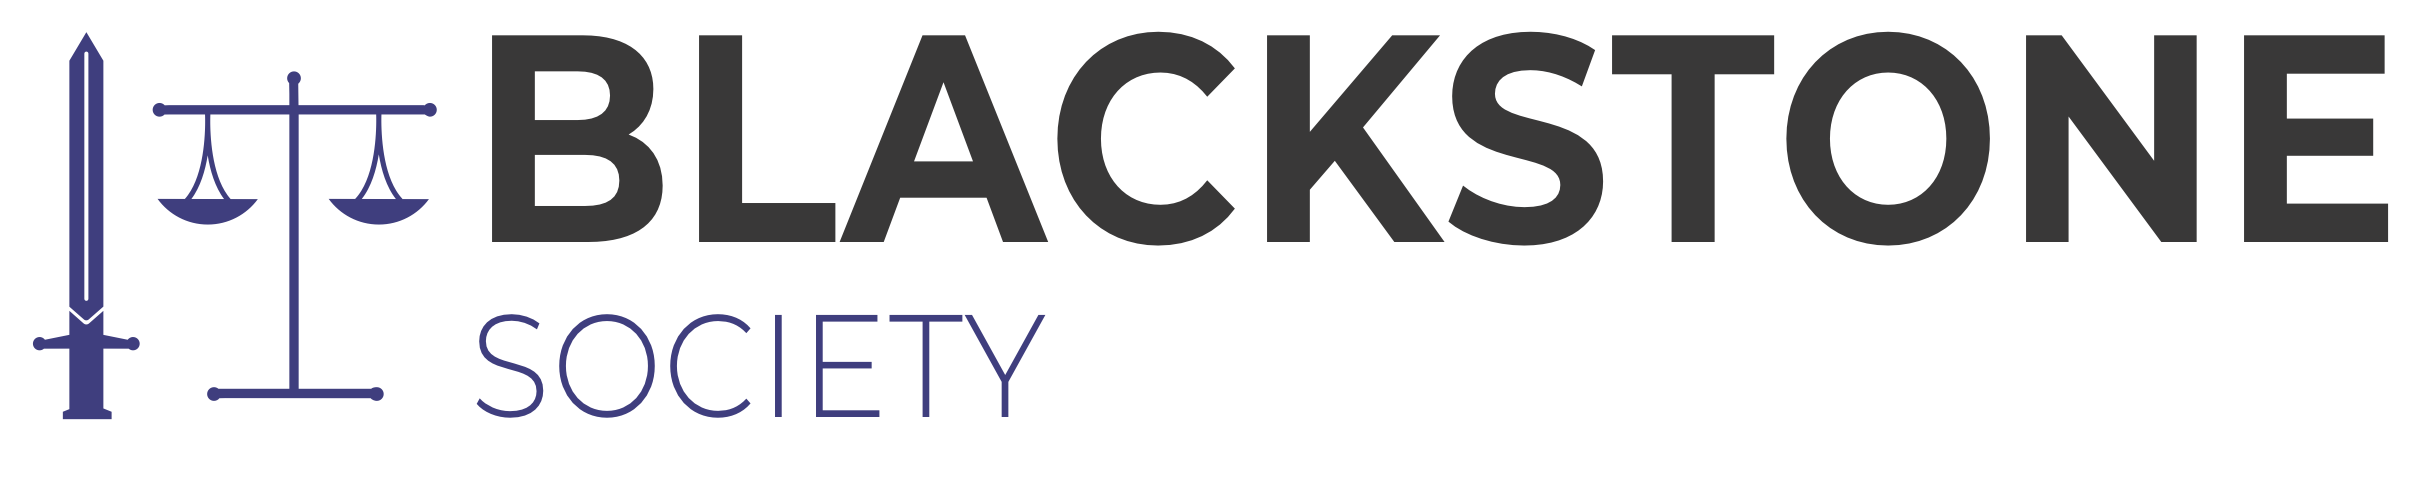 Blackstone Logos New (1).png